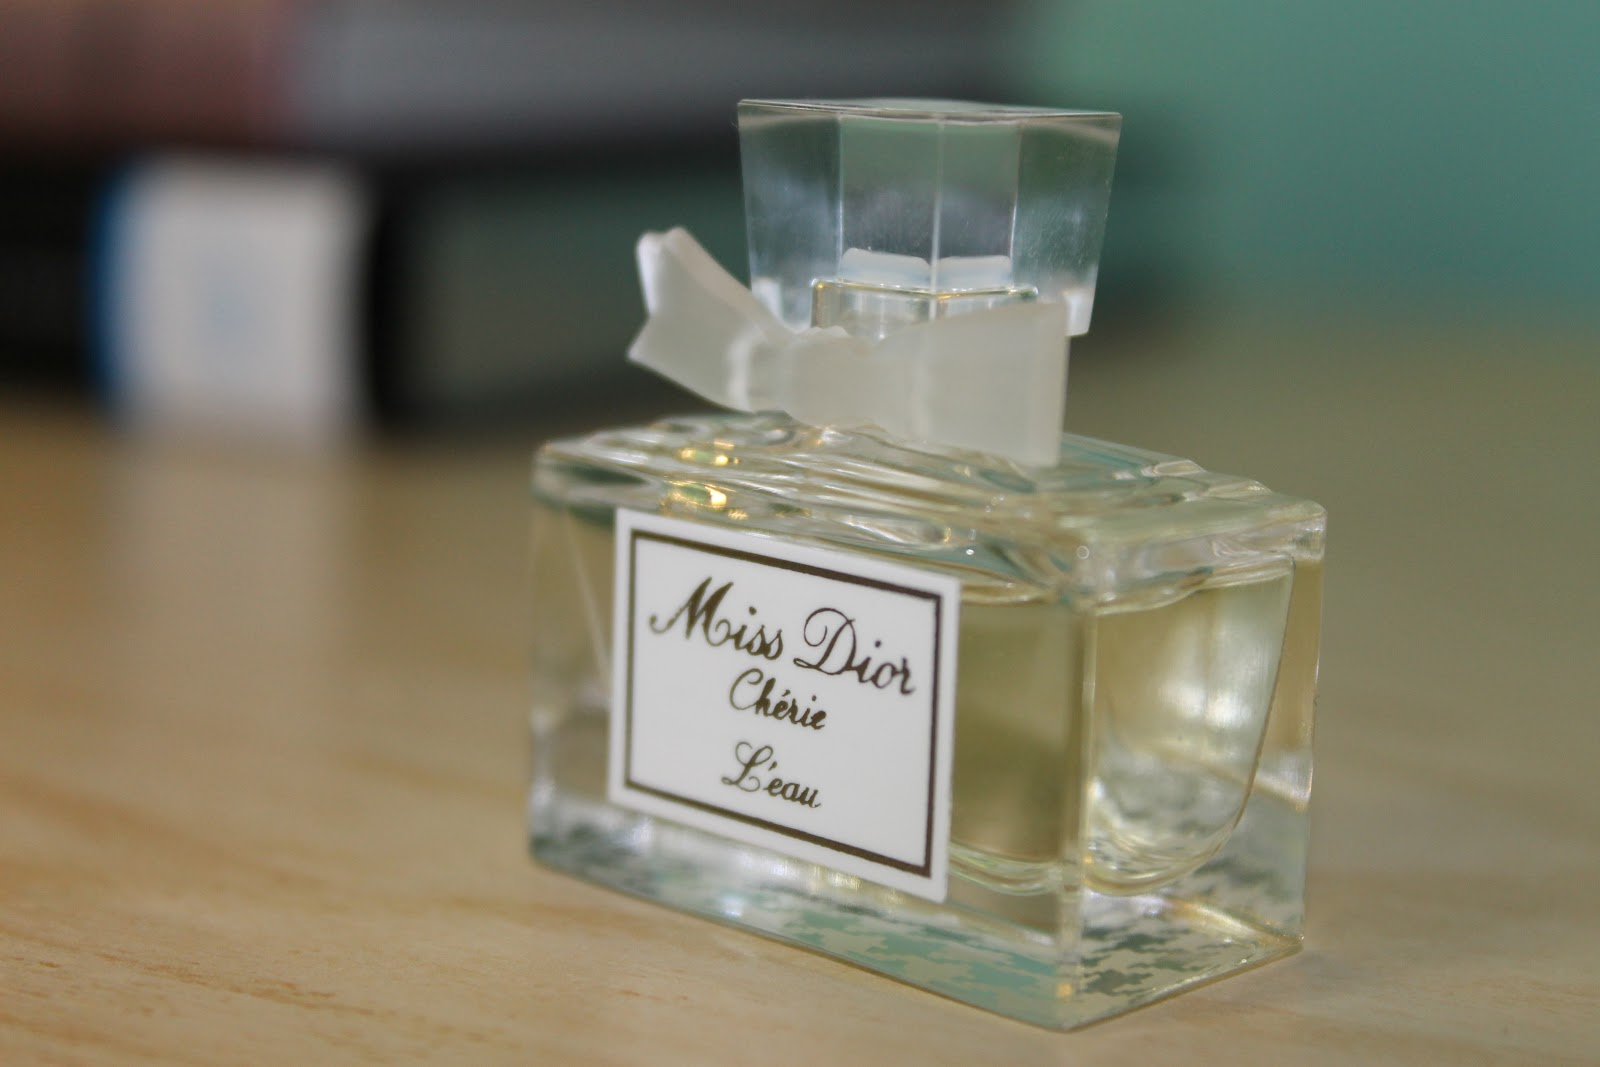 ... Miss Dior Cherie can be. I smell hints of light citrus with sharper  floral notes like gardenia slightly rounded out with a woody 4d8b4fcb43fd2